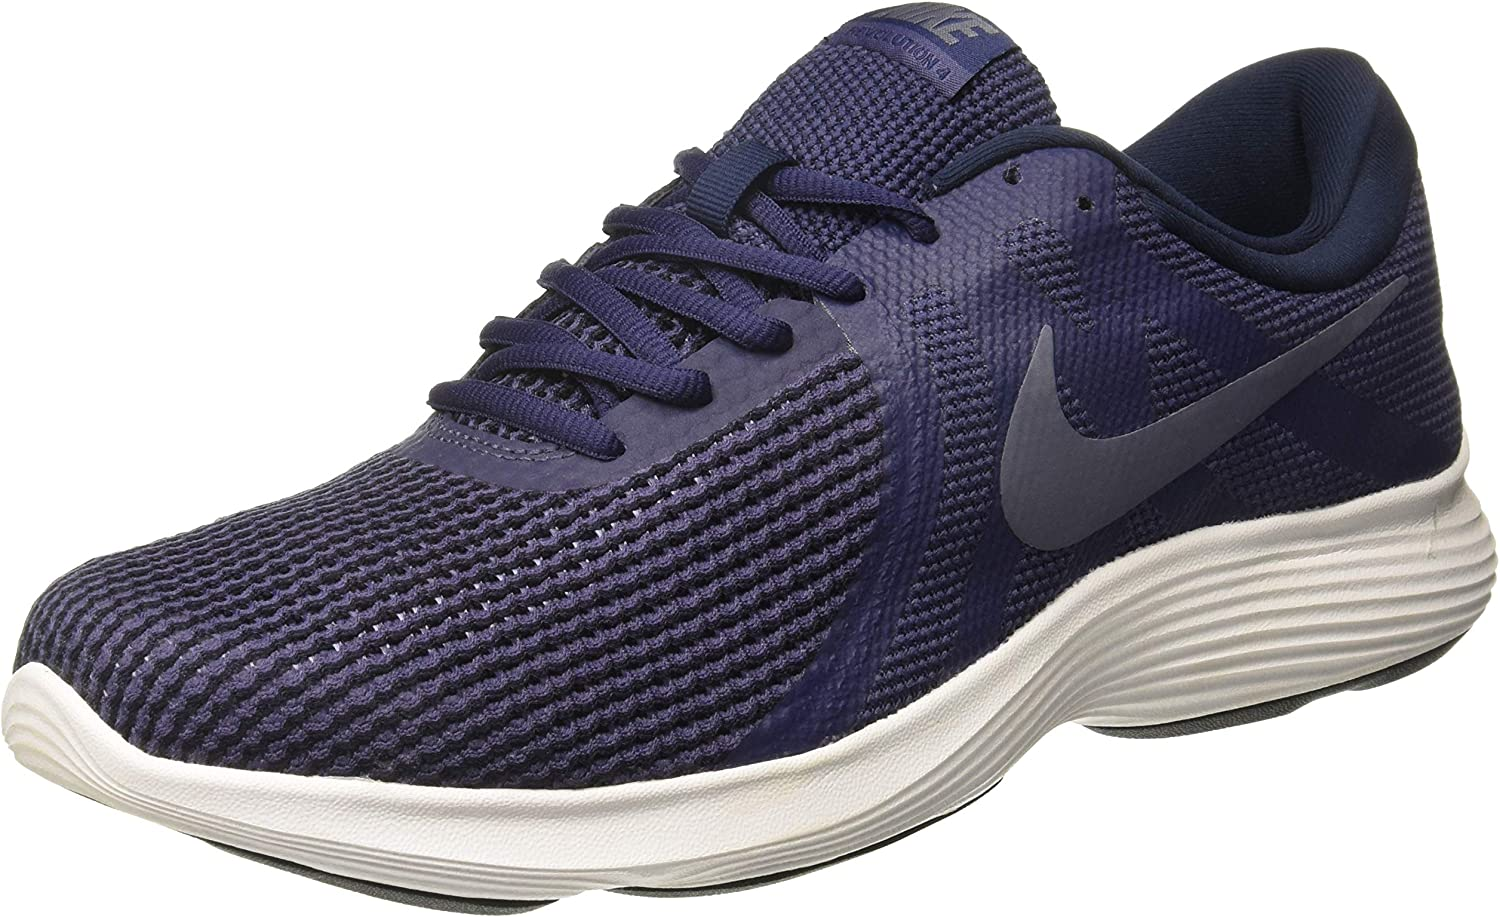 Nike Men's Revolution 4 Running Shoe Neutral Indigo Light Carbon Obsidian Size 9.5 M US